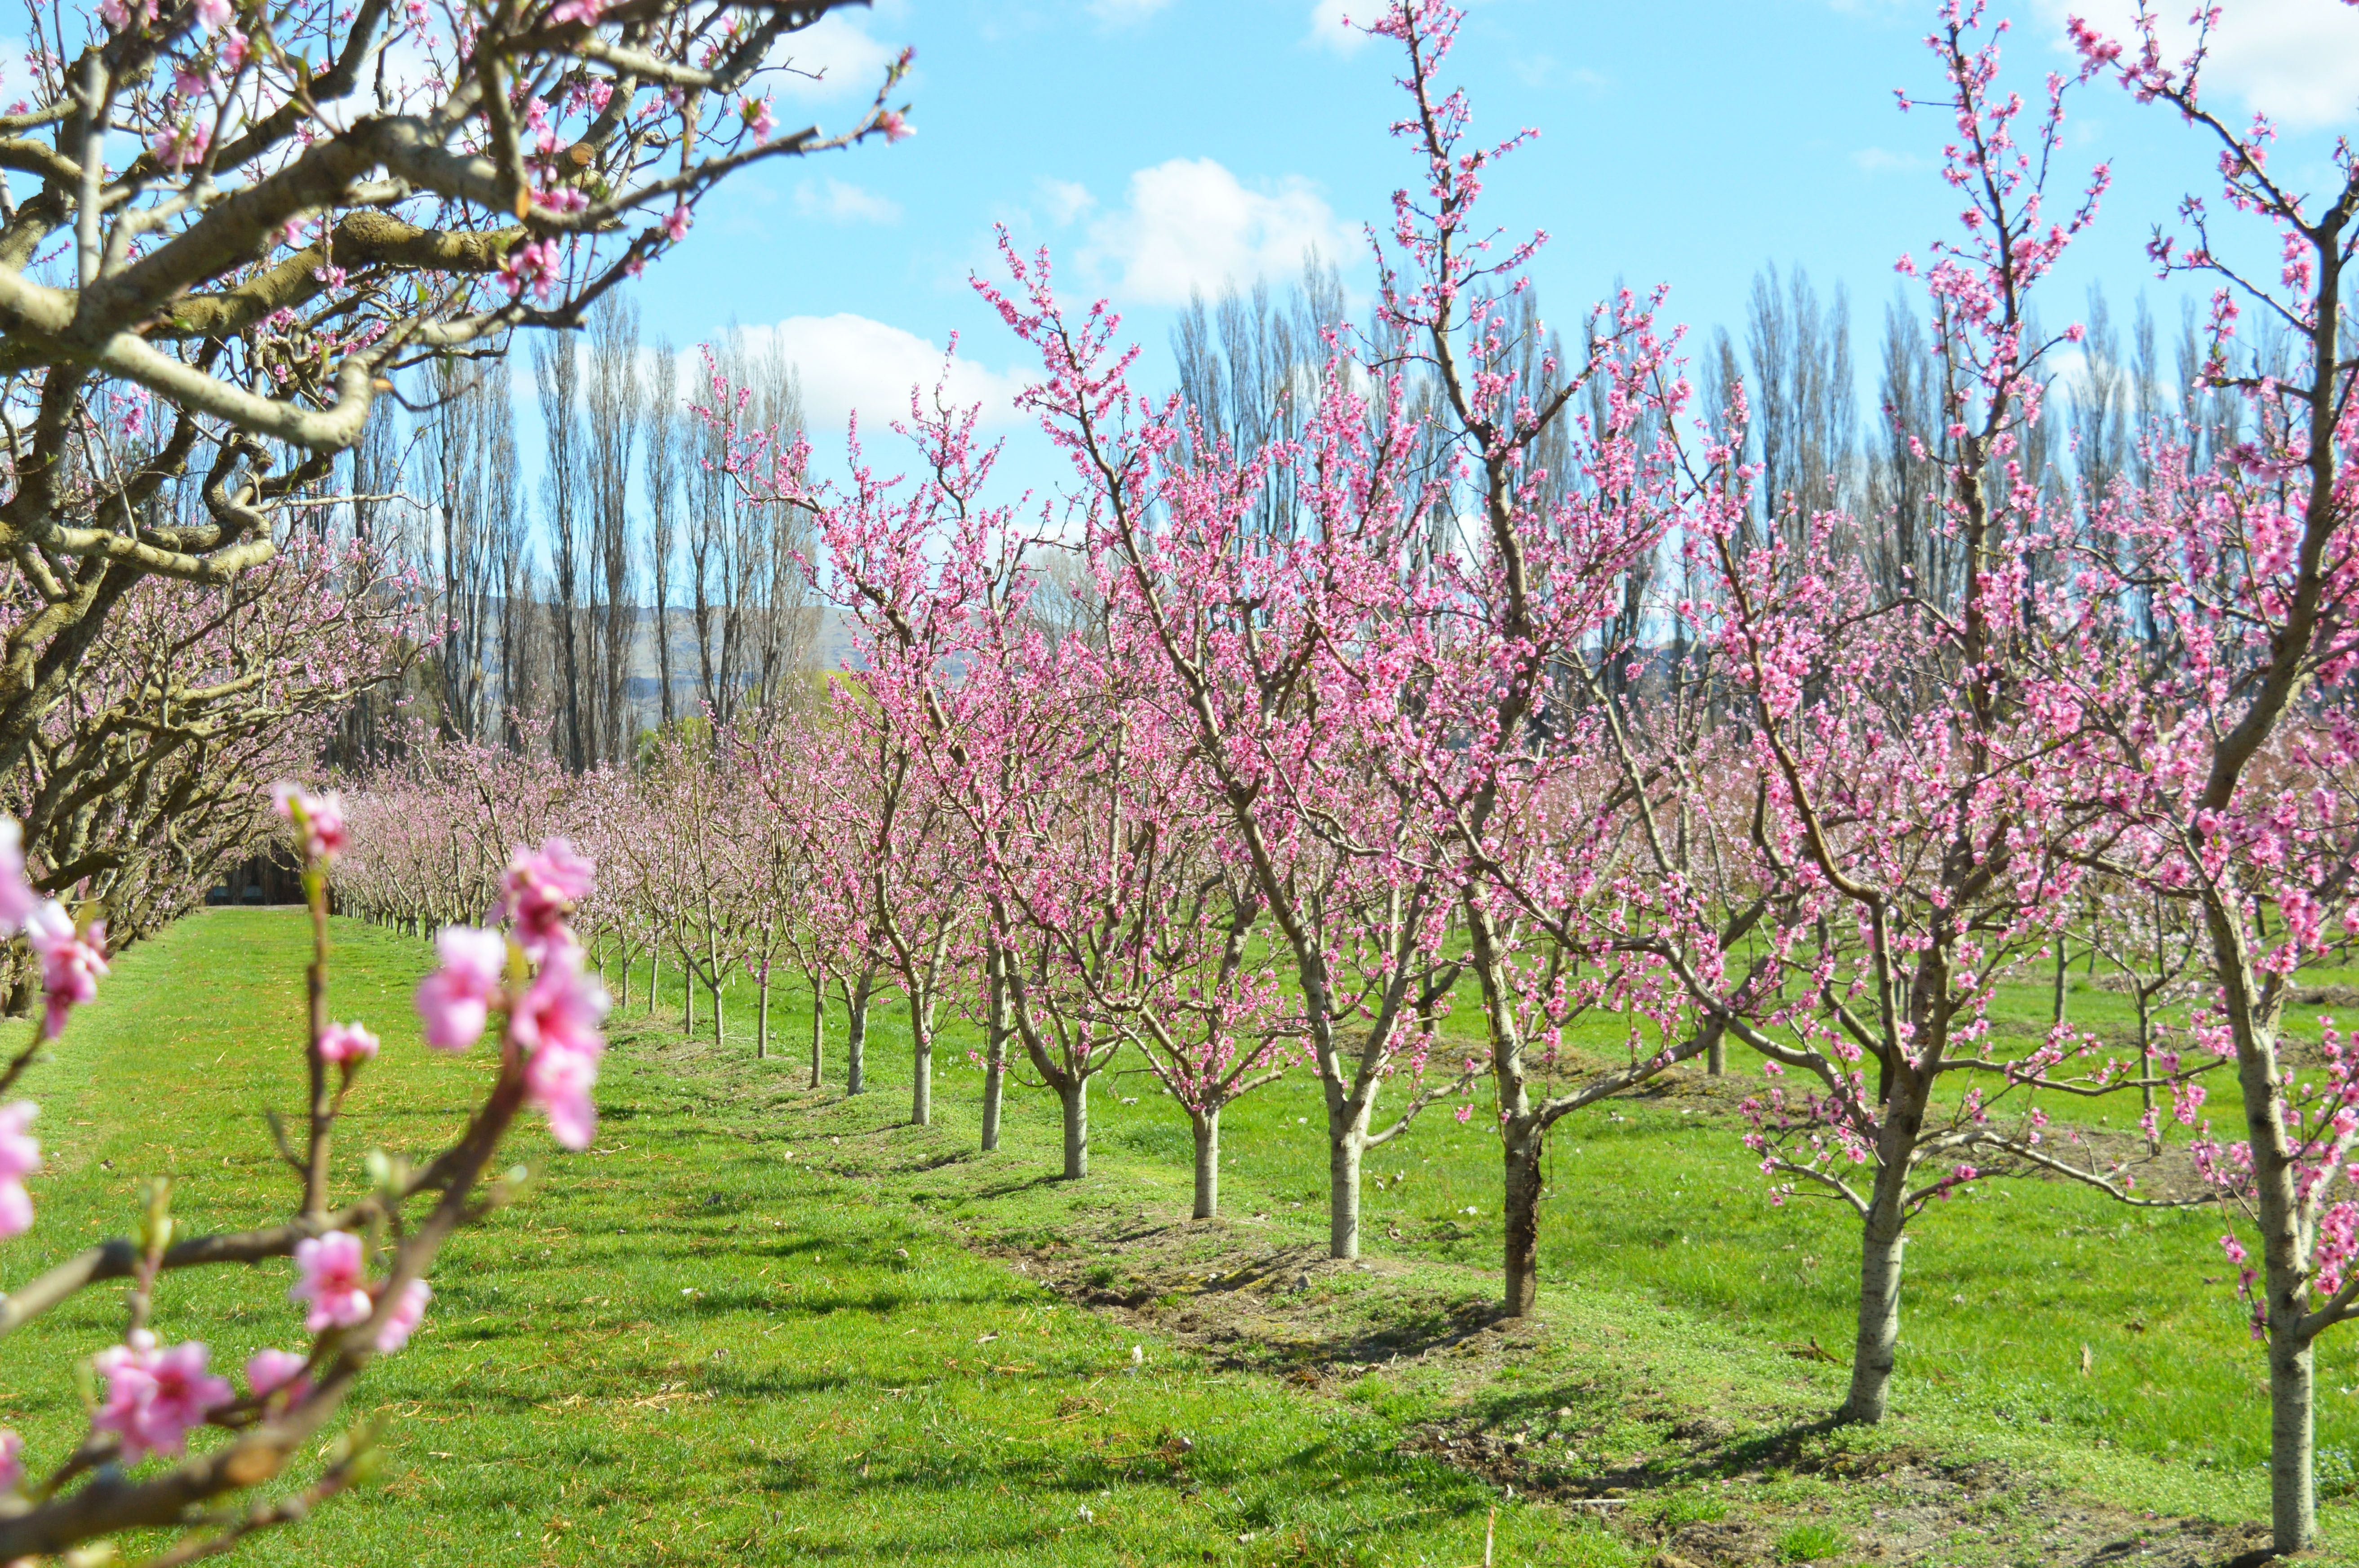 Cherries Trees In Spring Time Cromwell Spring Time Cherry Tree New Zealand